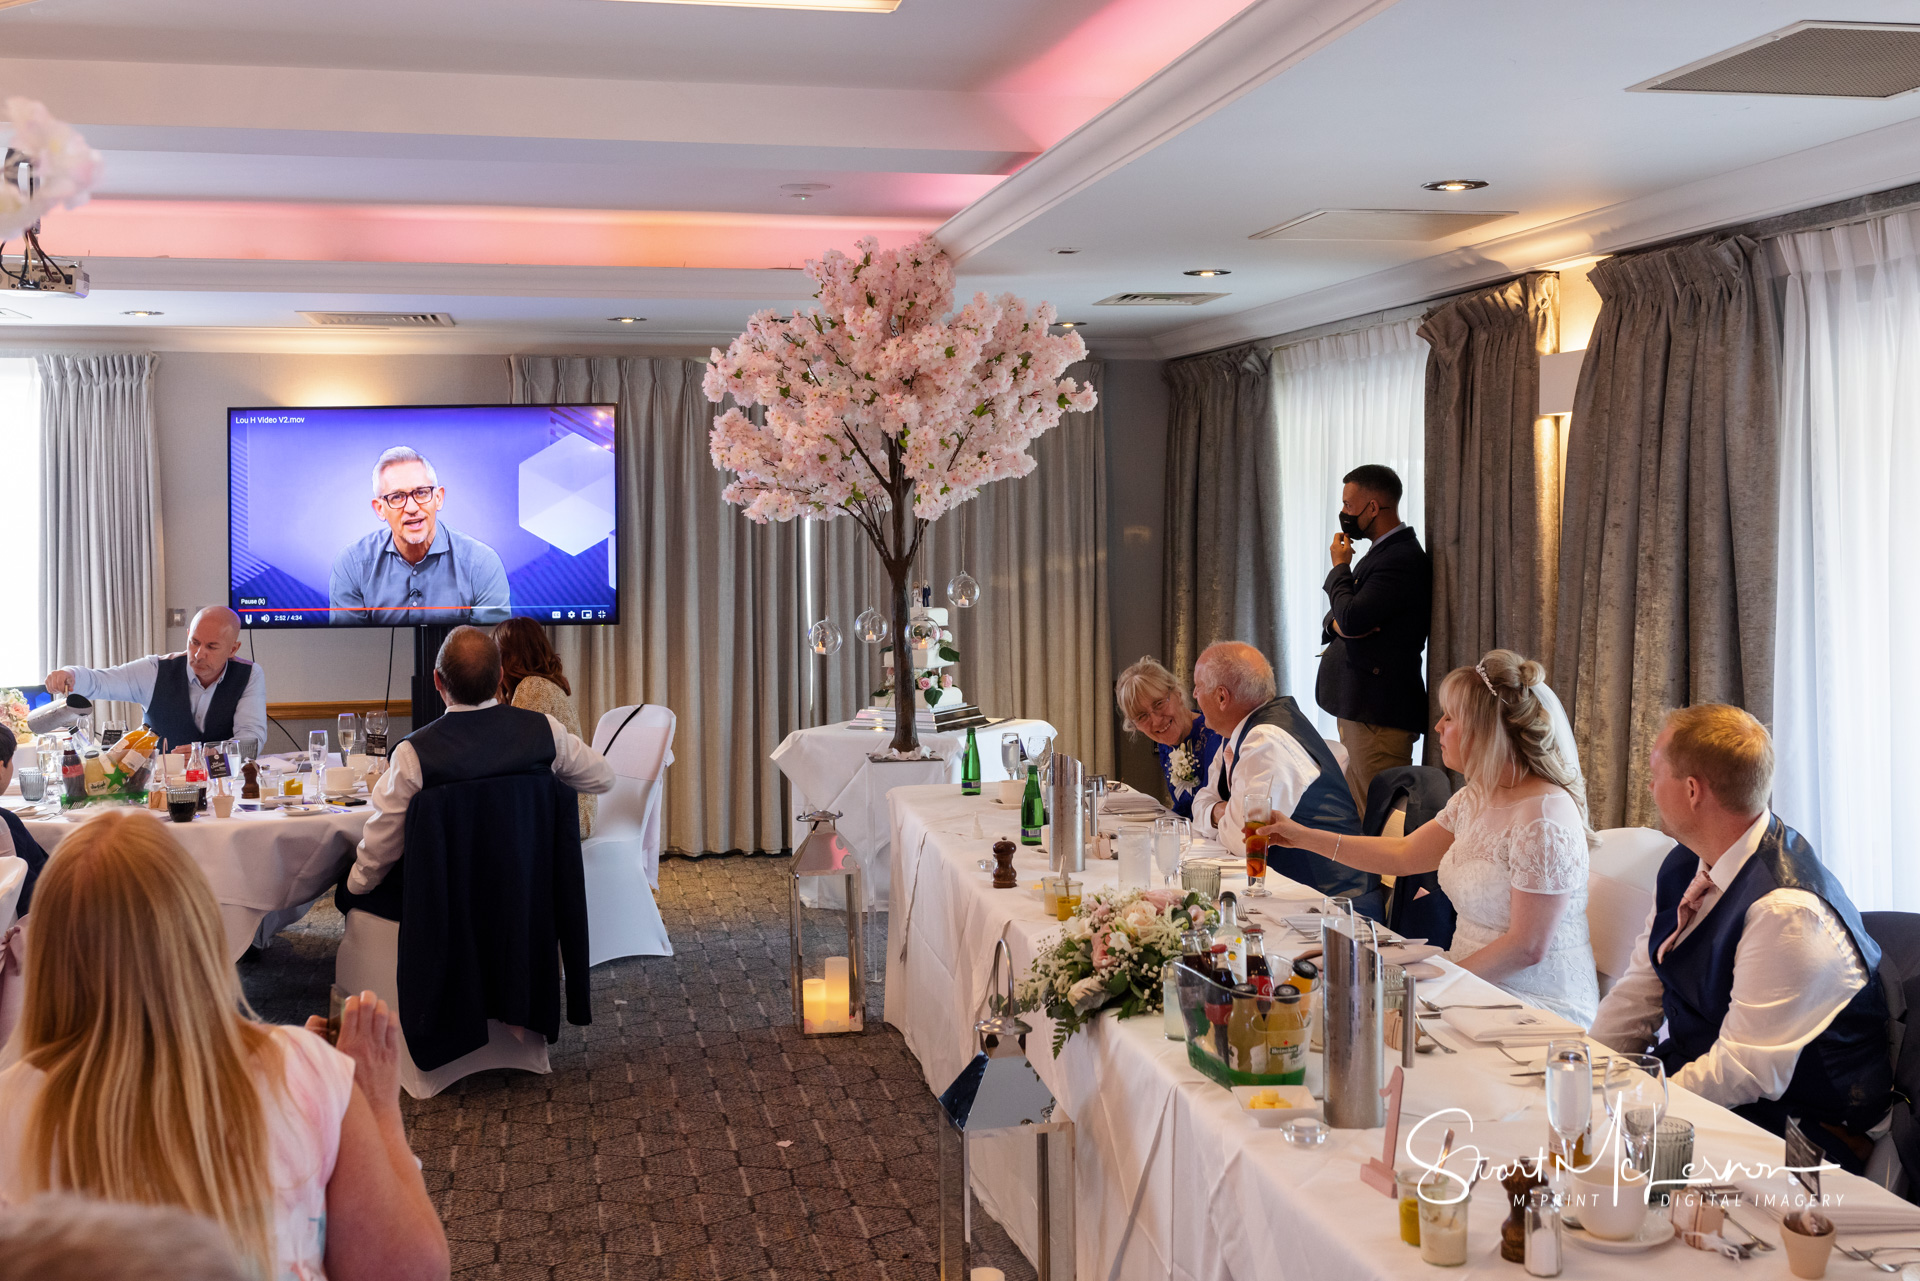 Gary Lineker's pre-recorded video message at the Wedding Breakfast